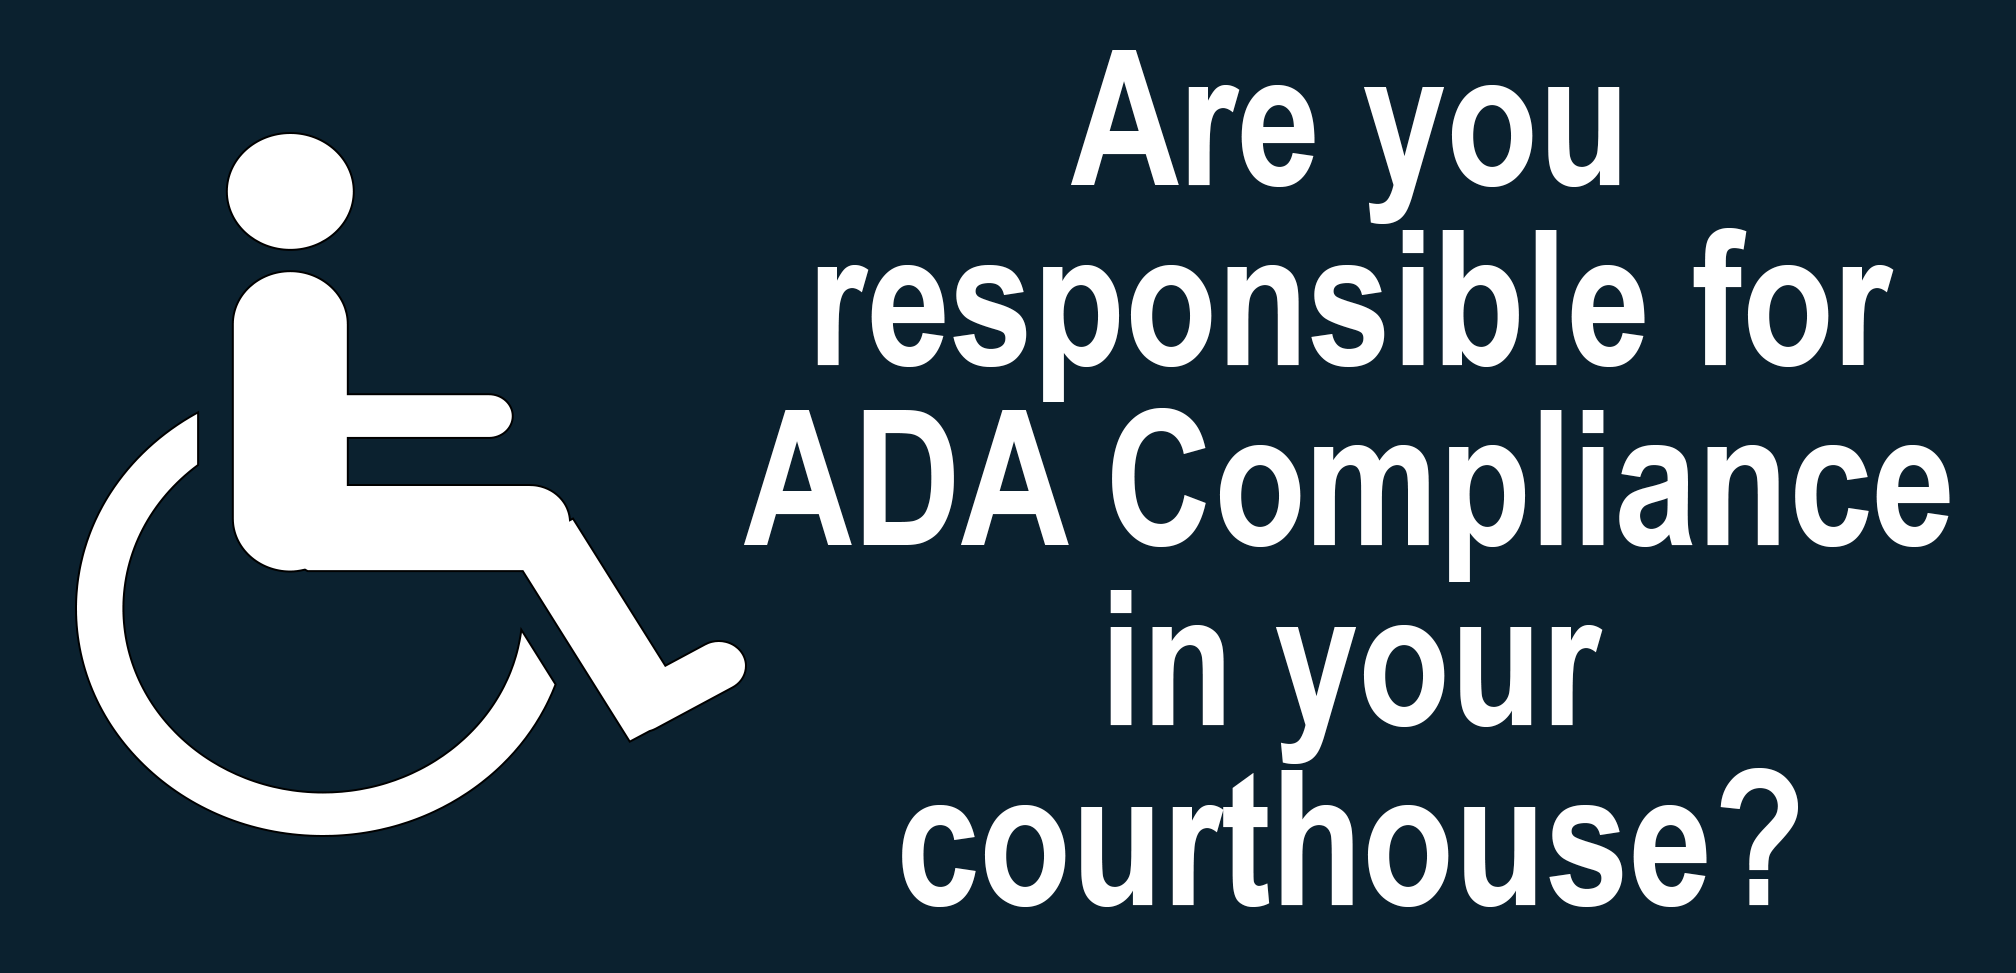 Handicap accessible sign. Are you responsible for ADA compliance in your courthouse? DrummAdvocacy can help.